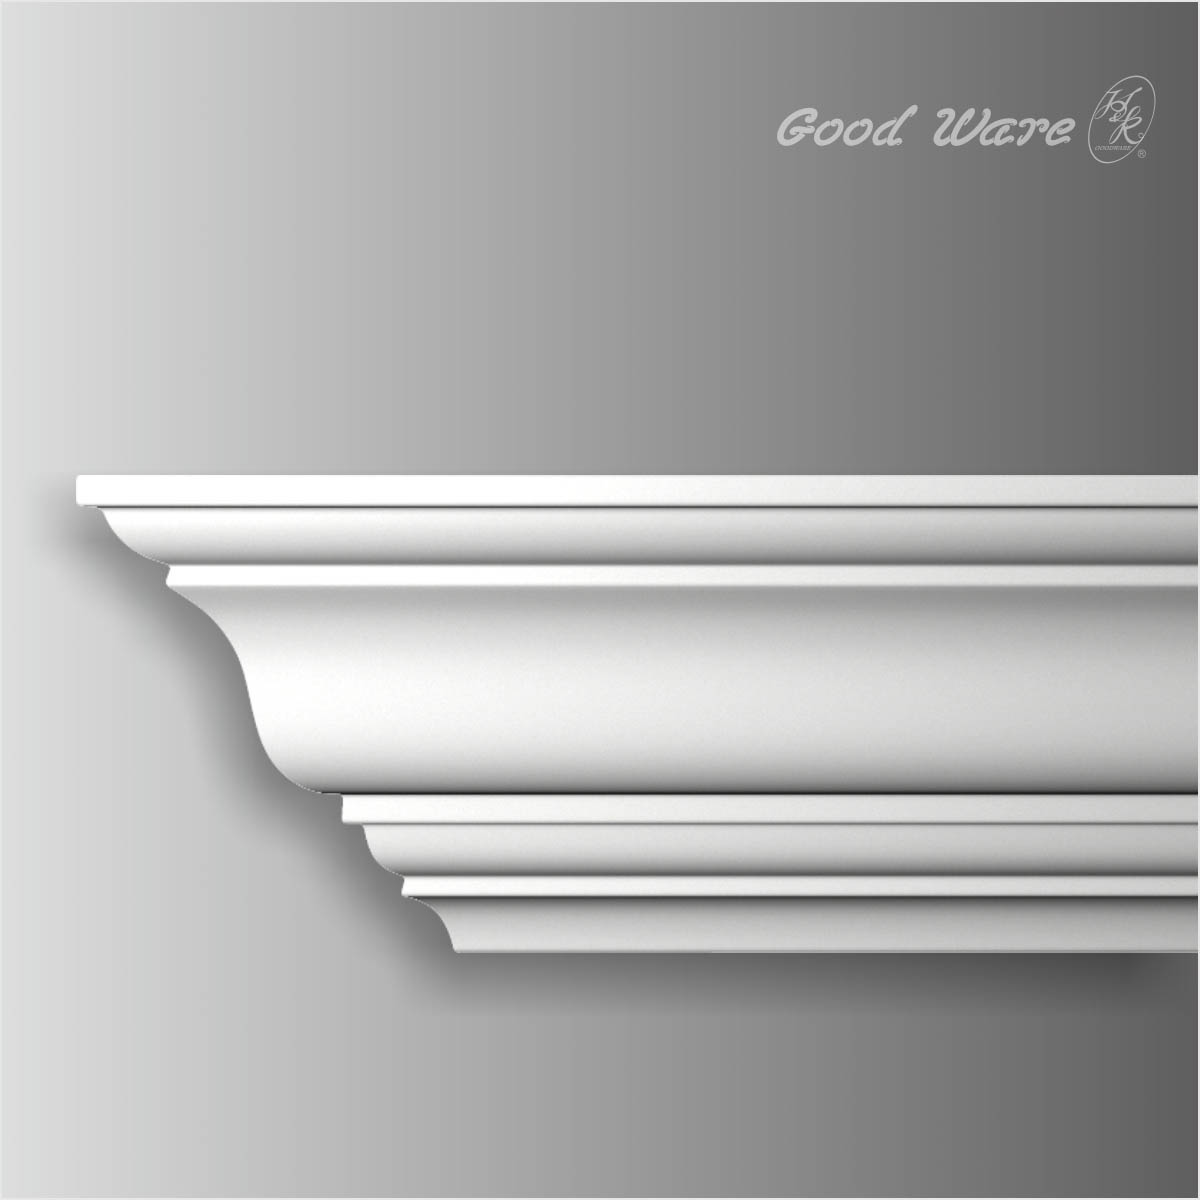 Polyurethane white door crown molding